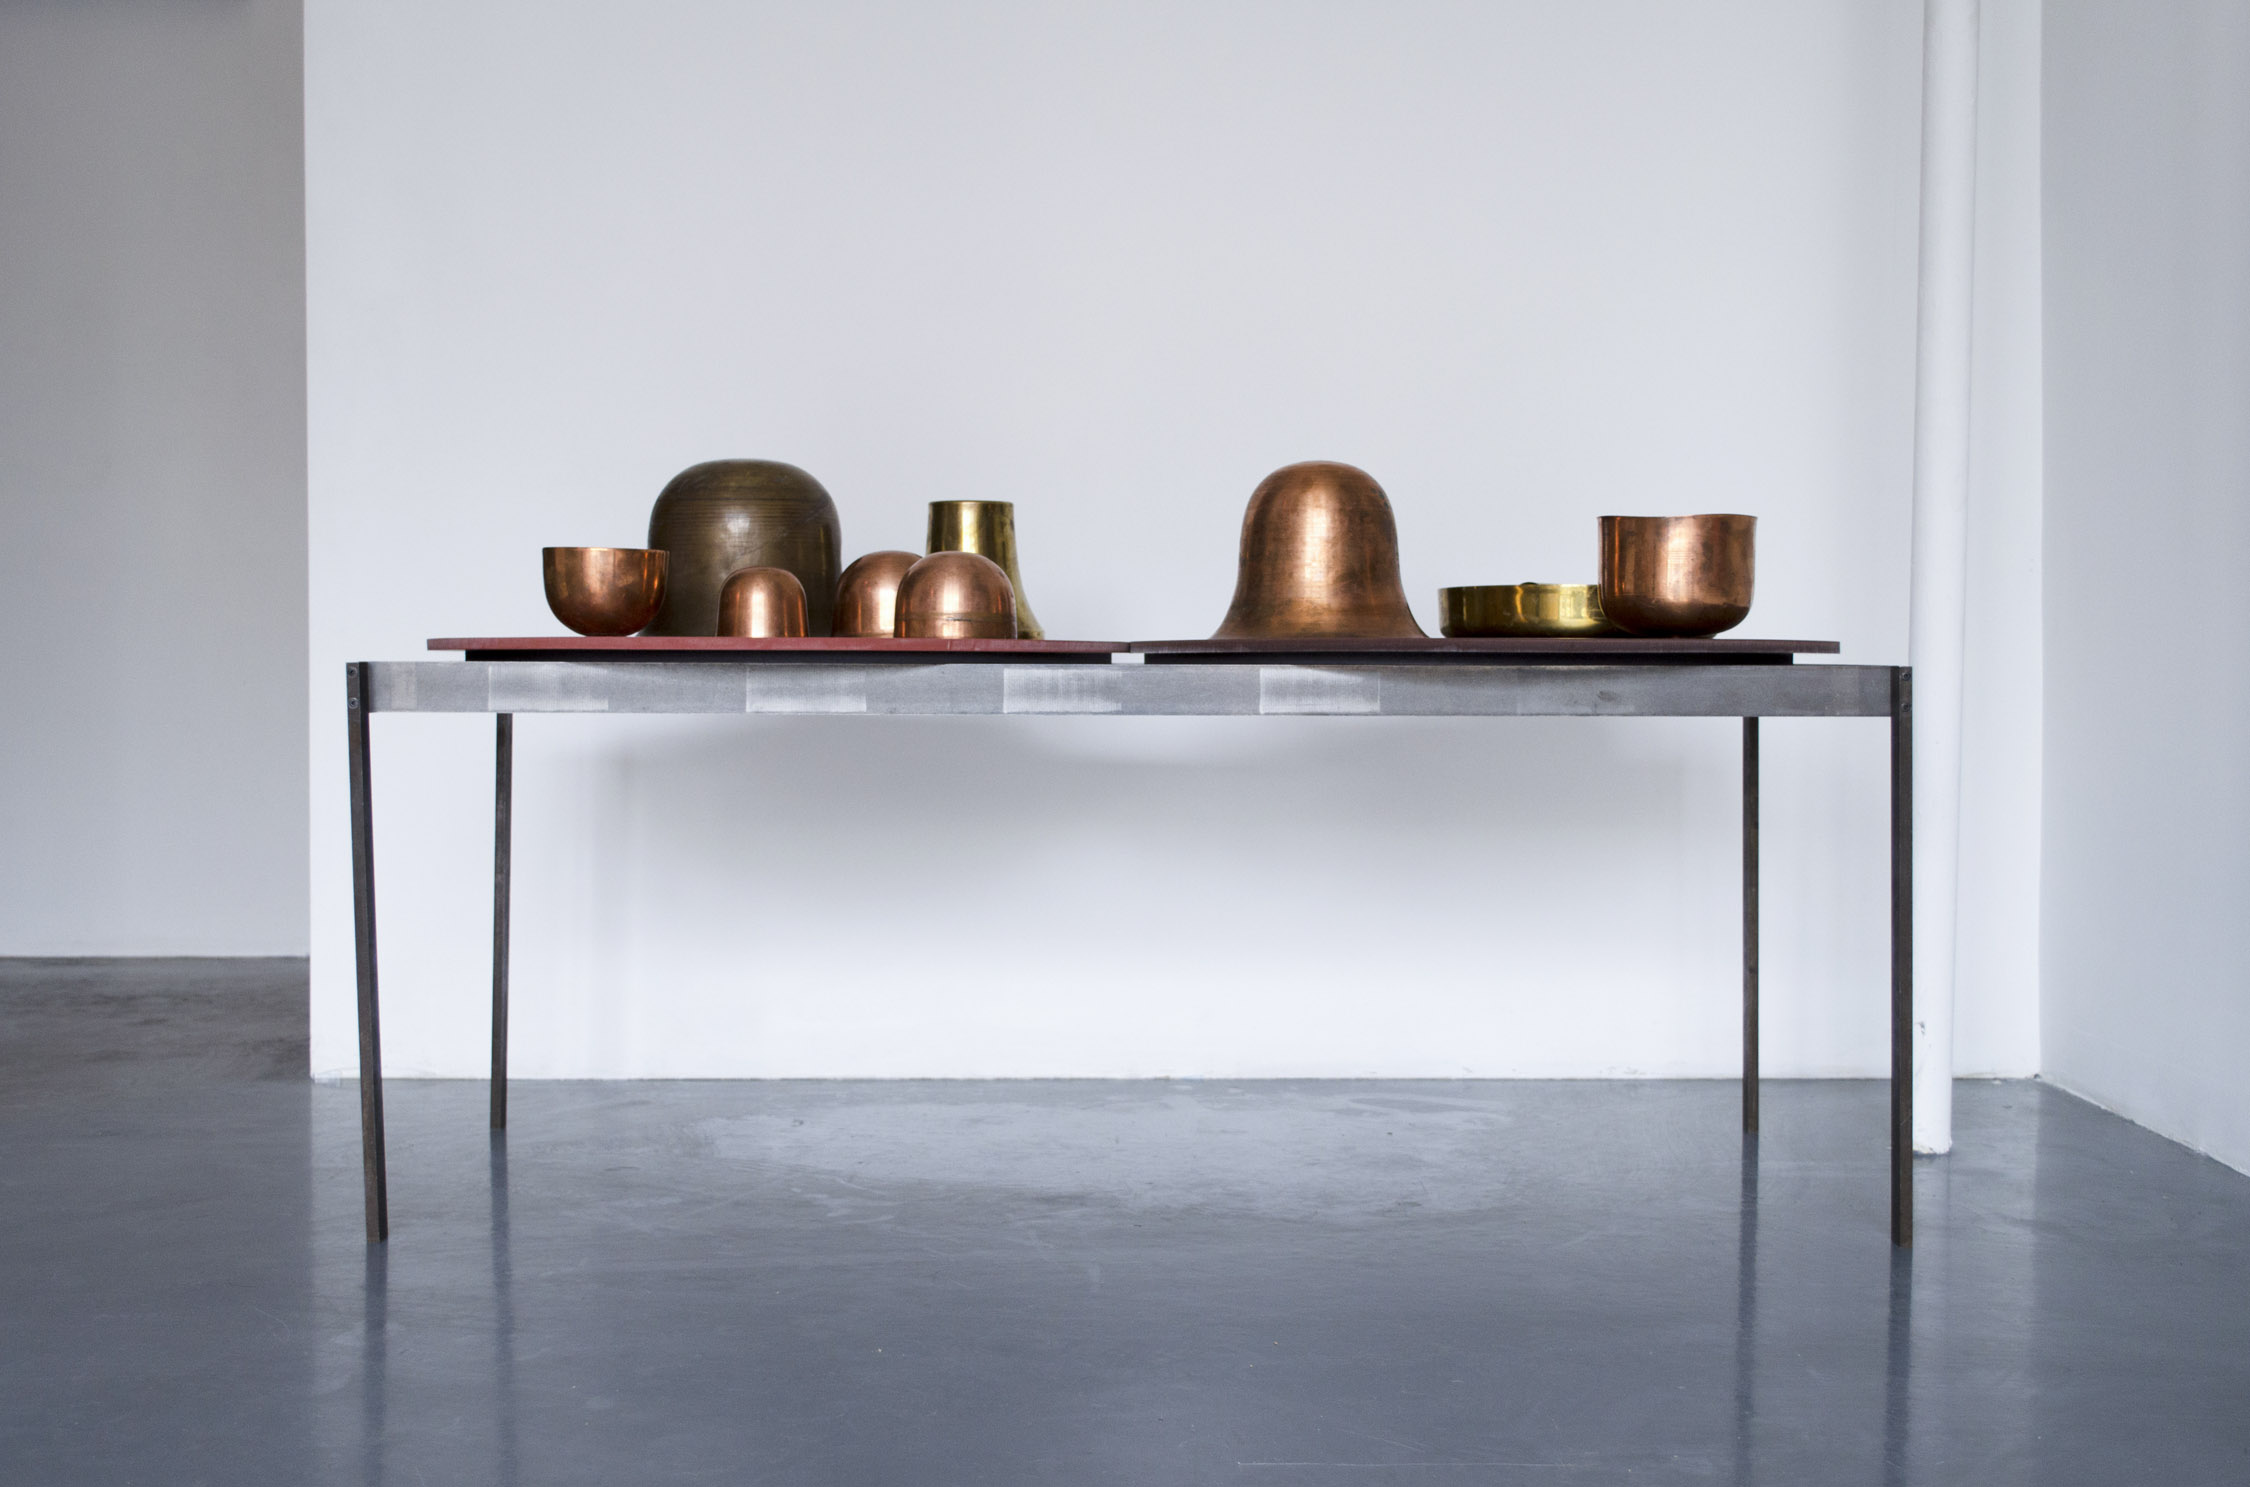 Sarah Entwistle,  WATER. METAL.ENAMEL.PLANTS + VERDANT + LIGHT   with Copper Sprung Vessels, 2019, Untreated milled steel, Base: 47.63 x 17.88 x 20.25 in (121 x 45.4 x 51.4 cm)